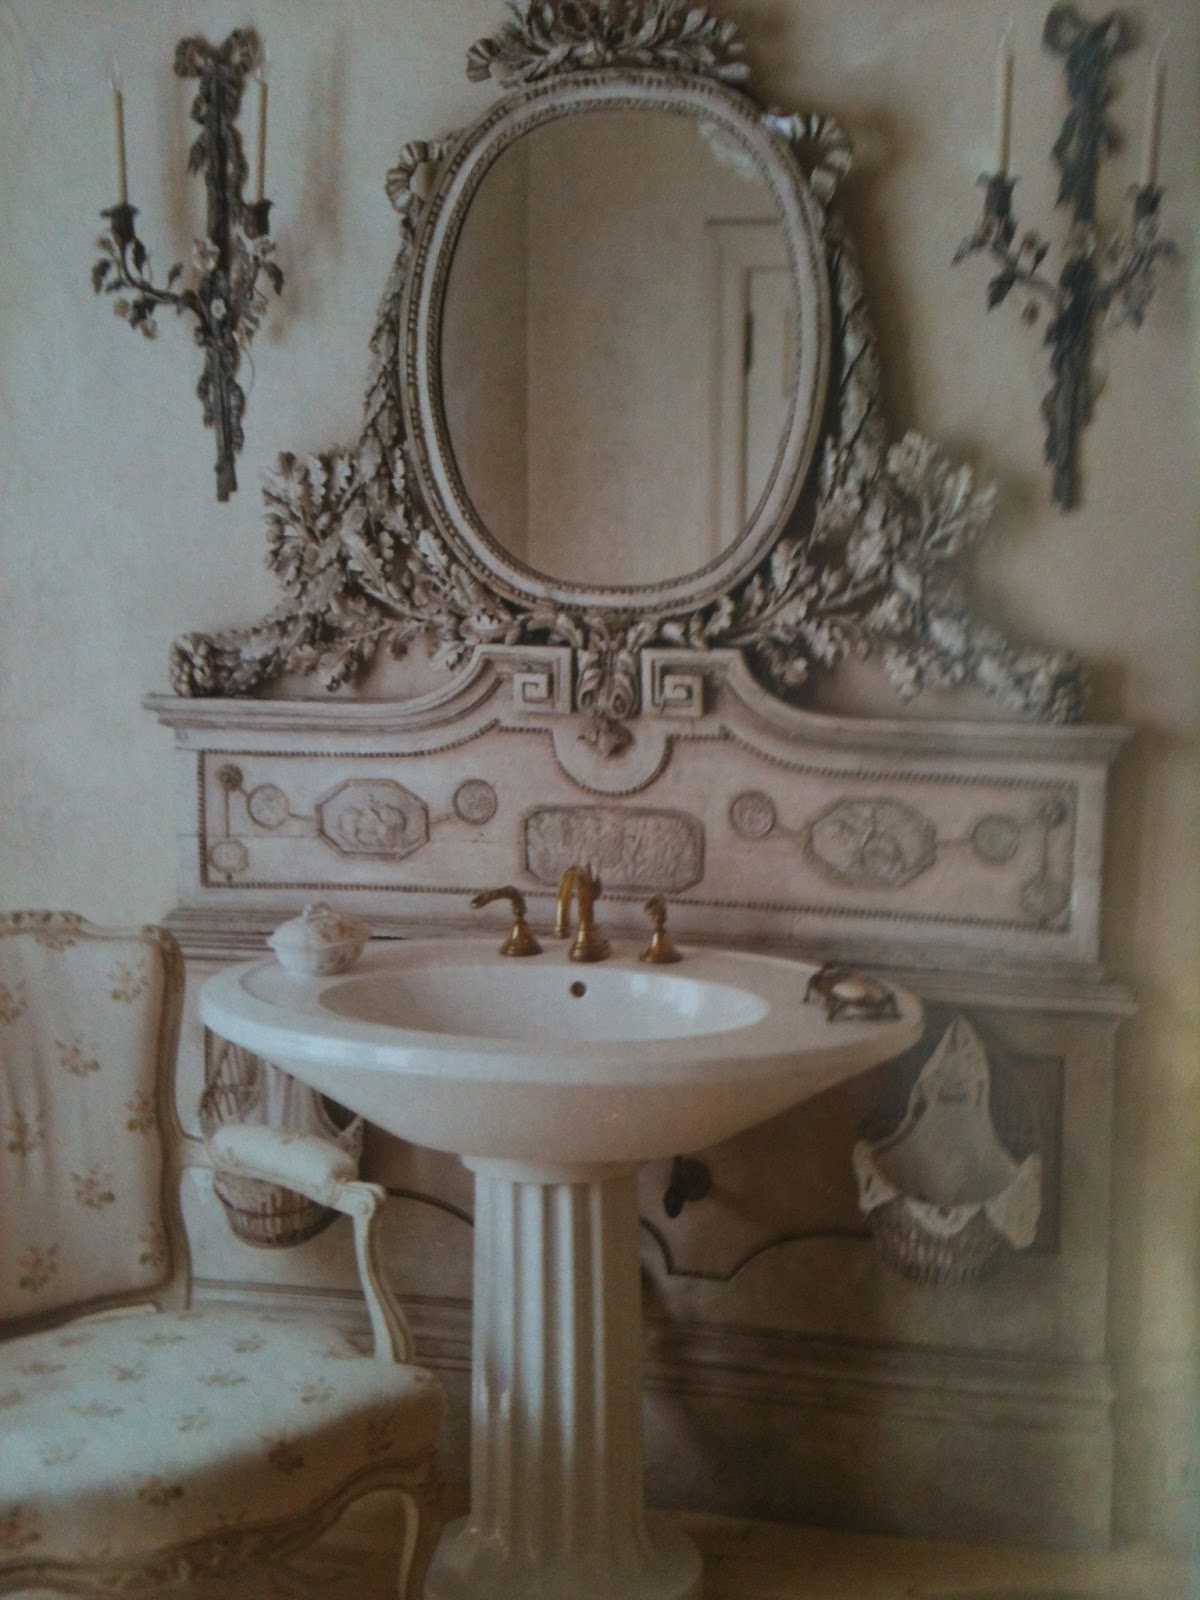 Eye For Design Architectural Elements Add Old World Charm